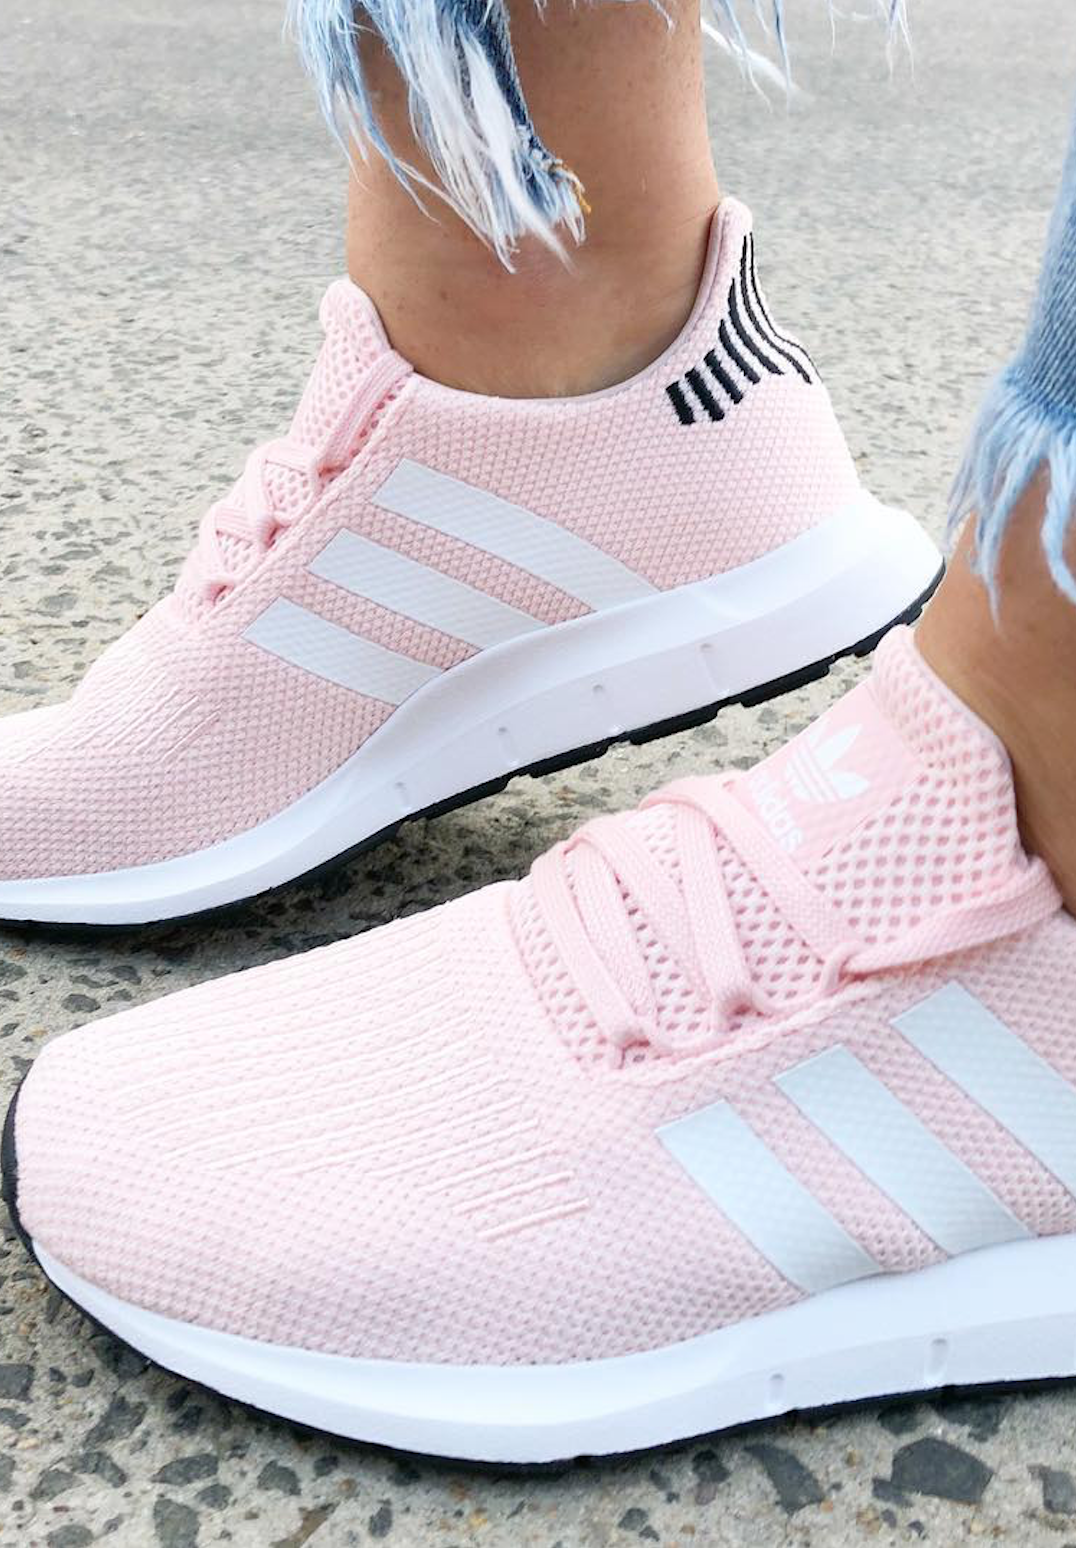 0efb3b02a23d4f adidas Swift Run Sneakers in Icy Pink. Seriously stylish shoes 2018.